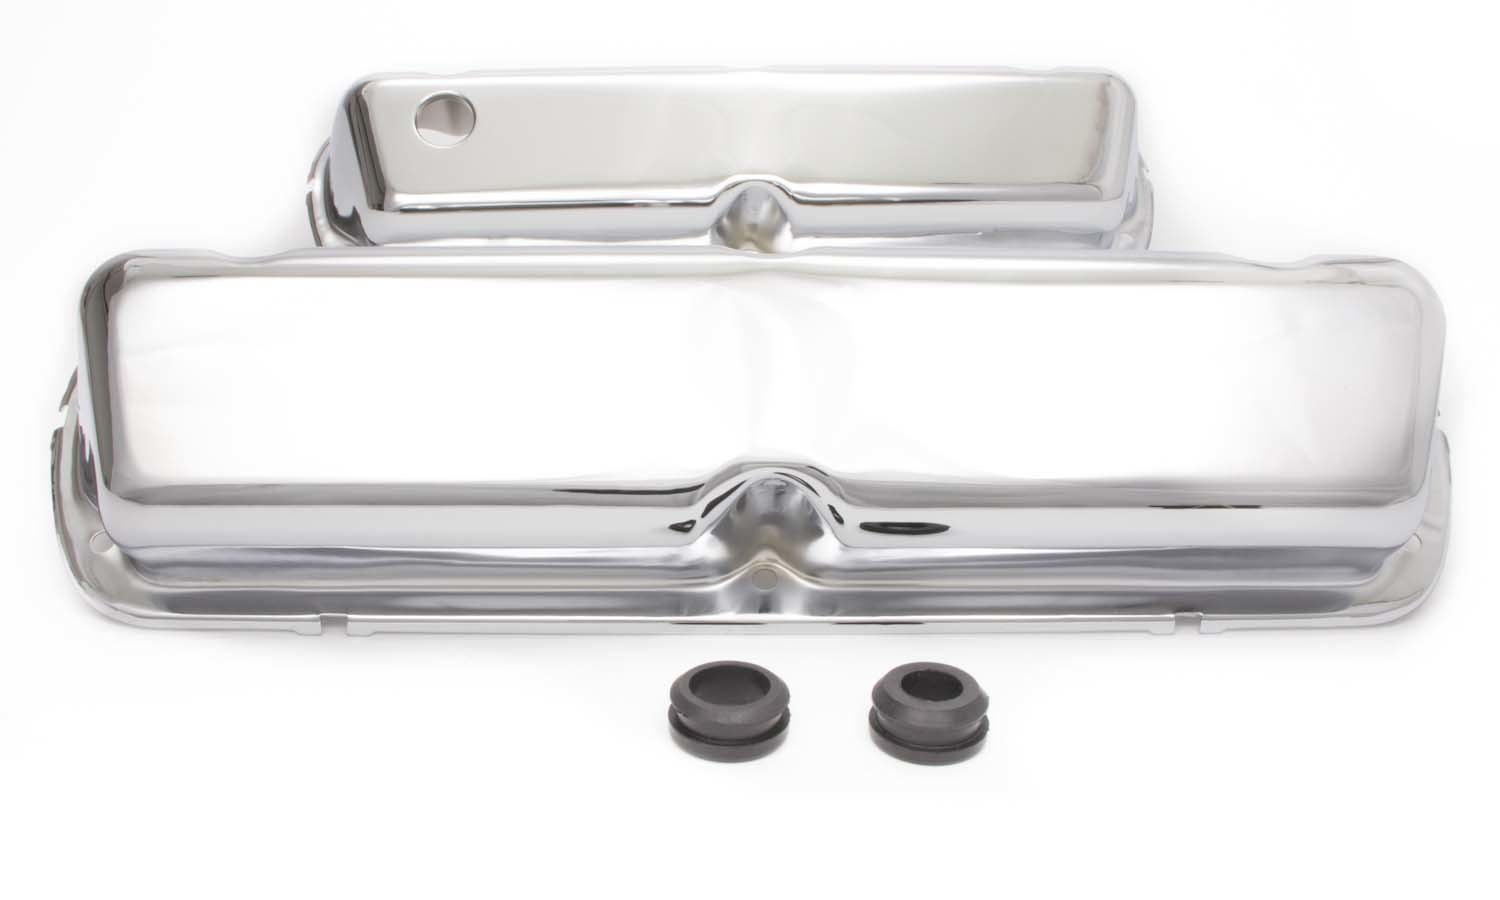 Racing Power Co-packaged 86-95 Mustang 5.0L Valve Cover Chrome